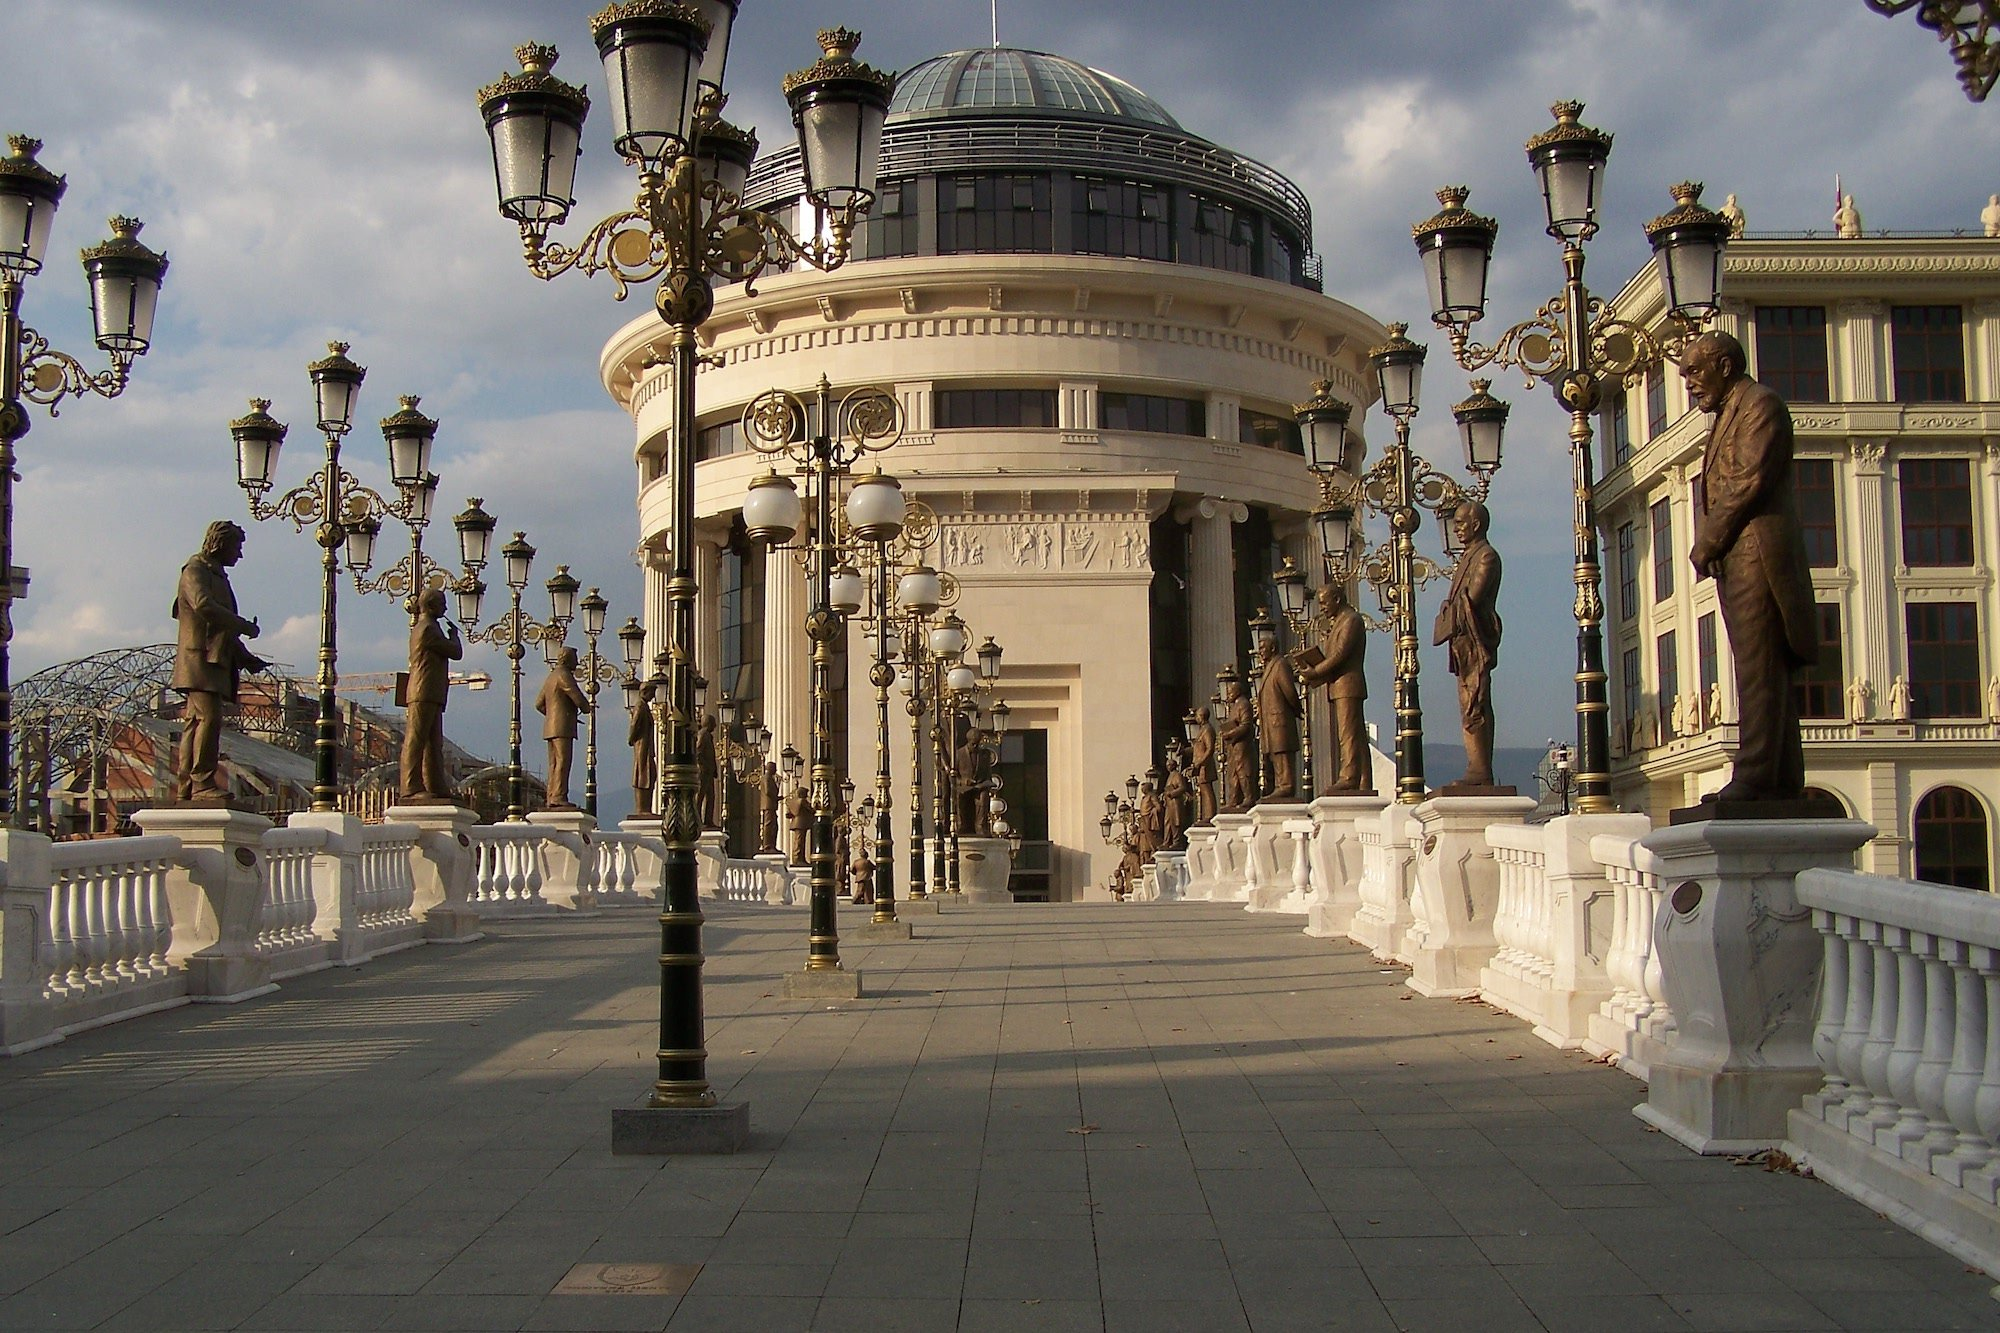 The Bridge of Arts leading to the Ministry of Foreign Affairs. Image: Zorica under a CC licence